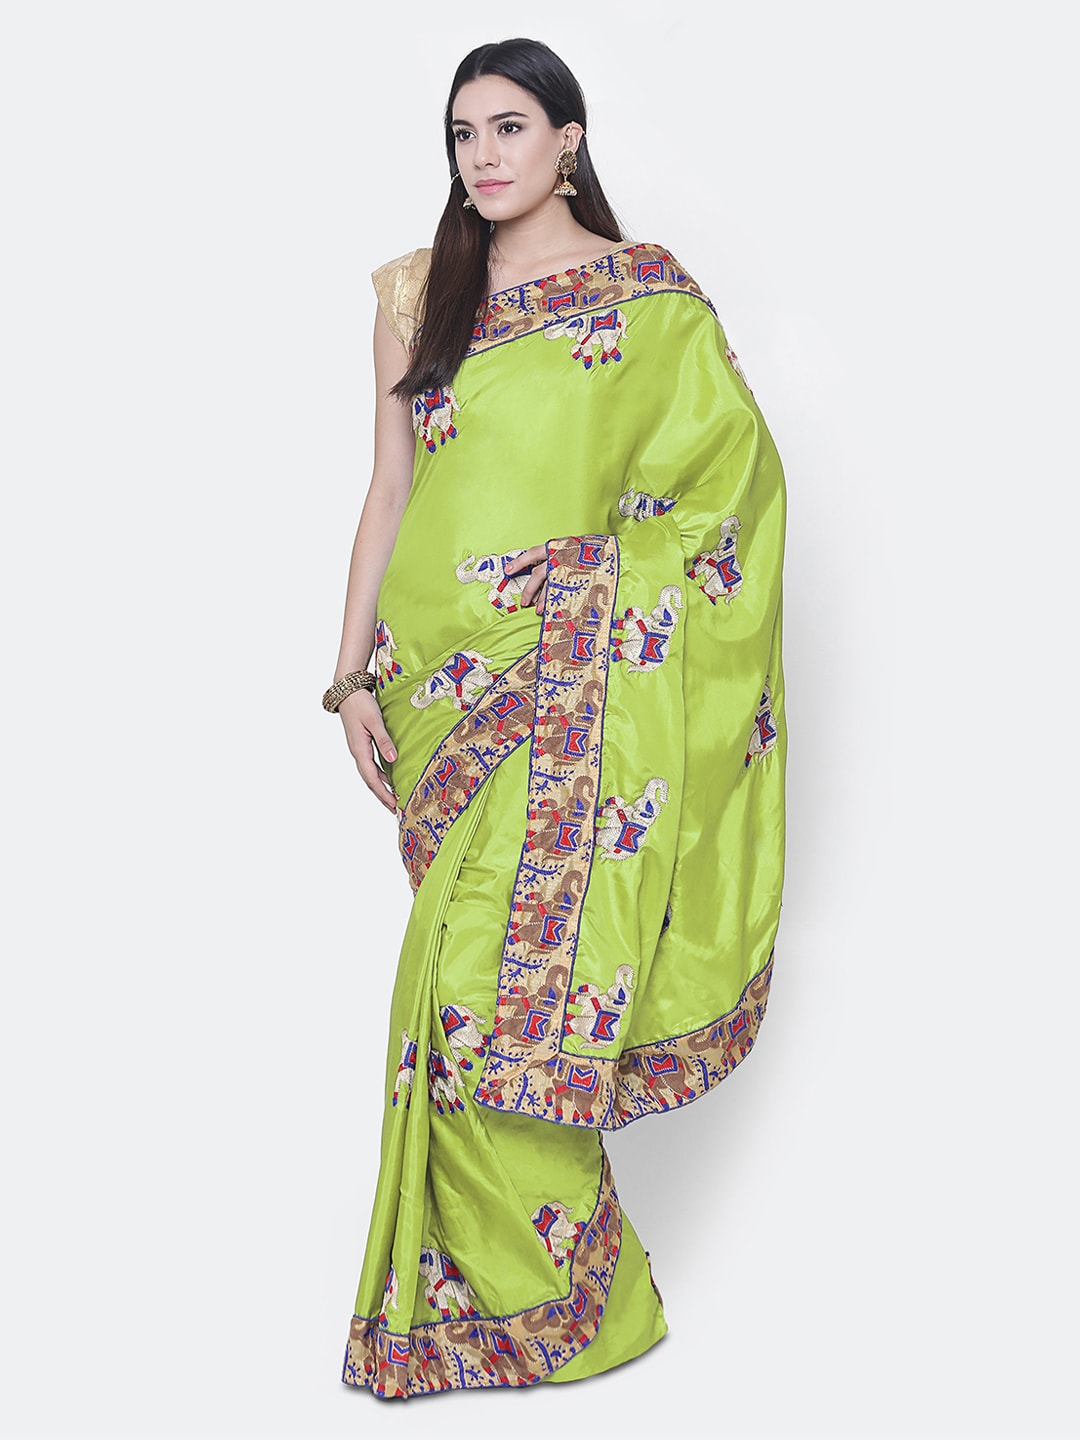 03d3a4d6f57a68 Chhabra 555 Sarees - Shop for Chhabra 555 Saree from Myntra Online